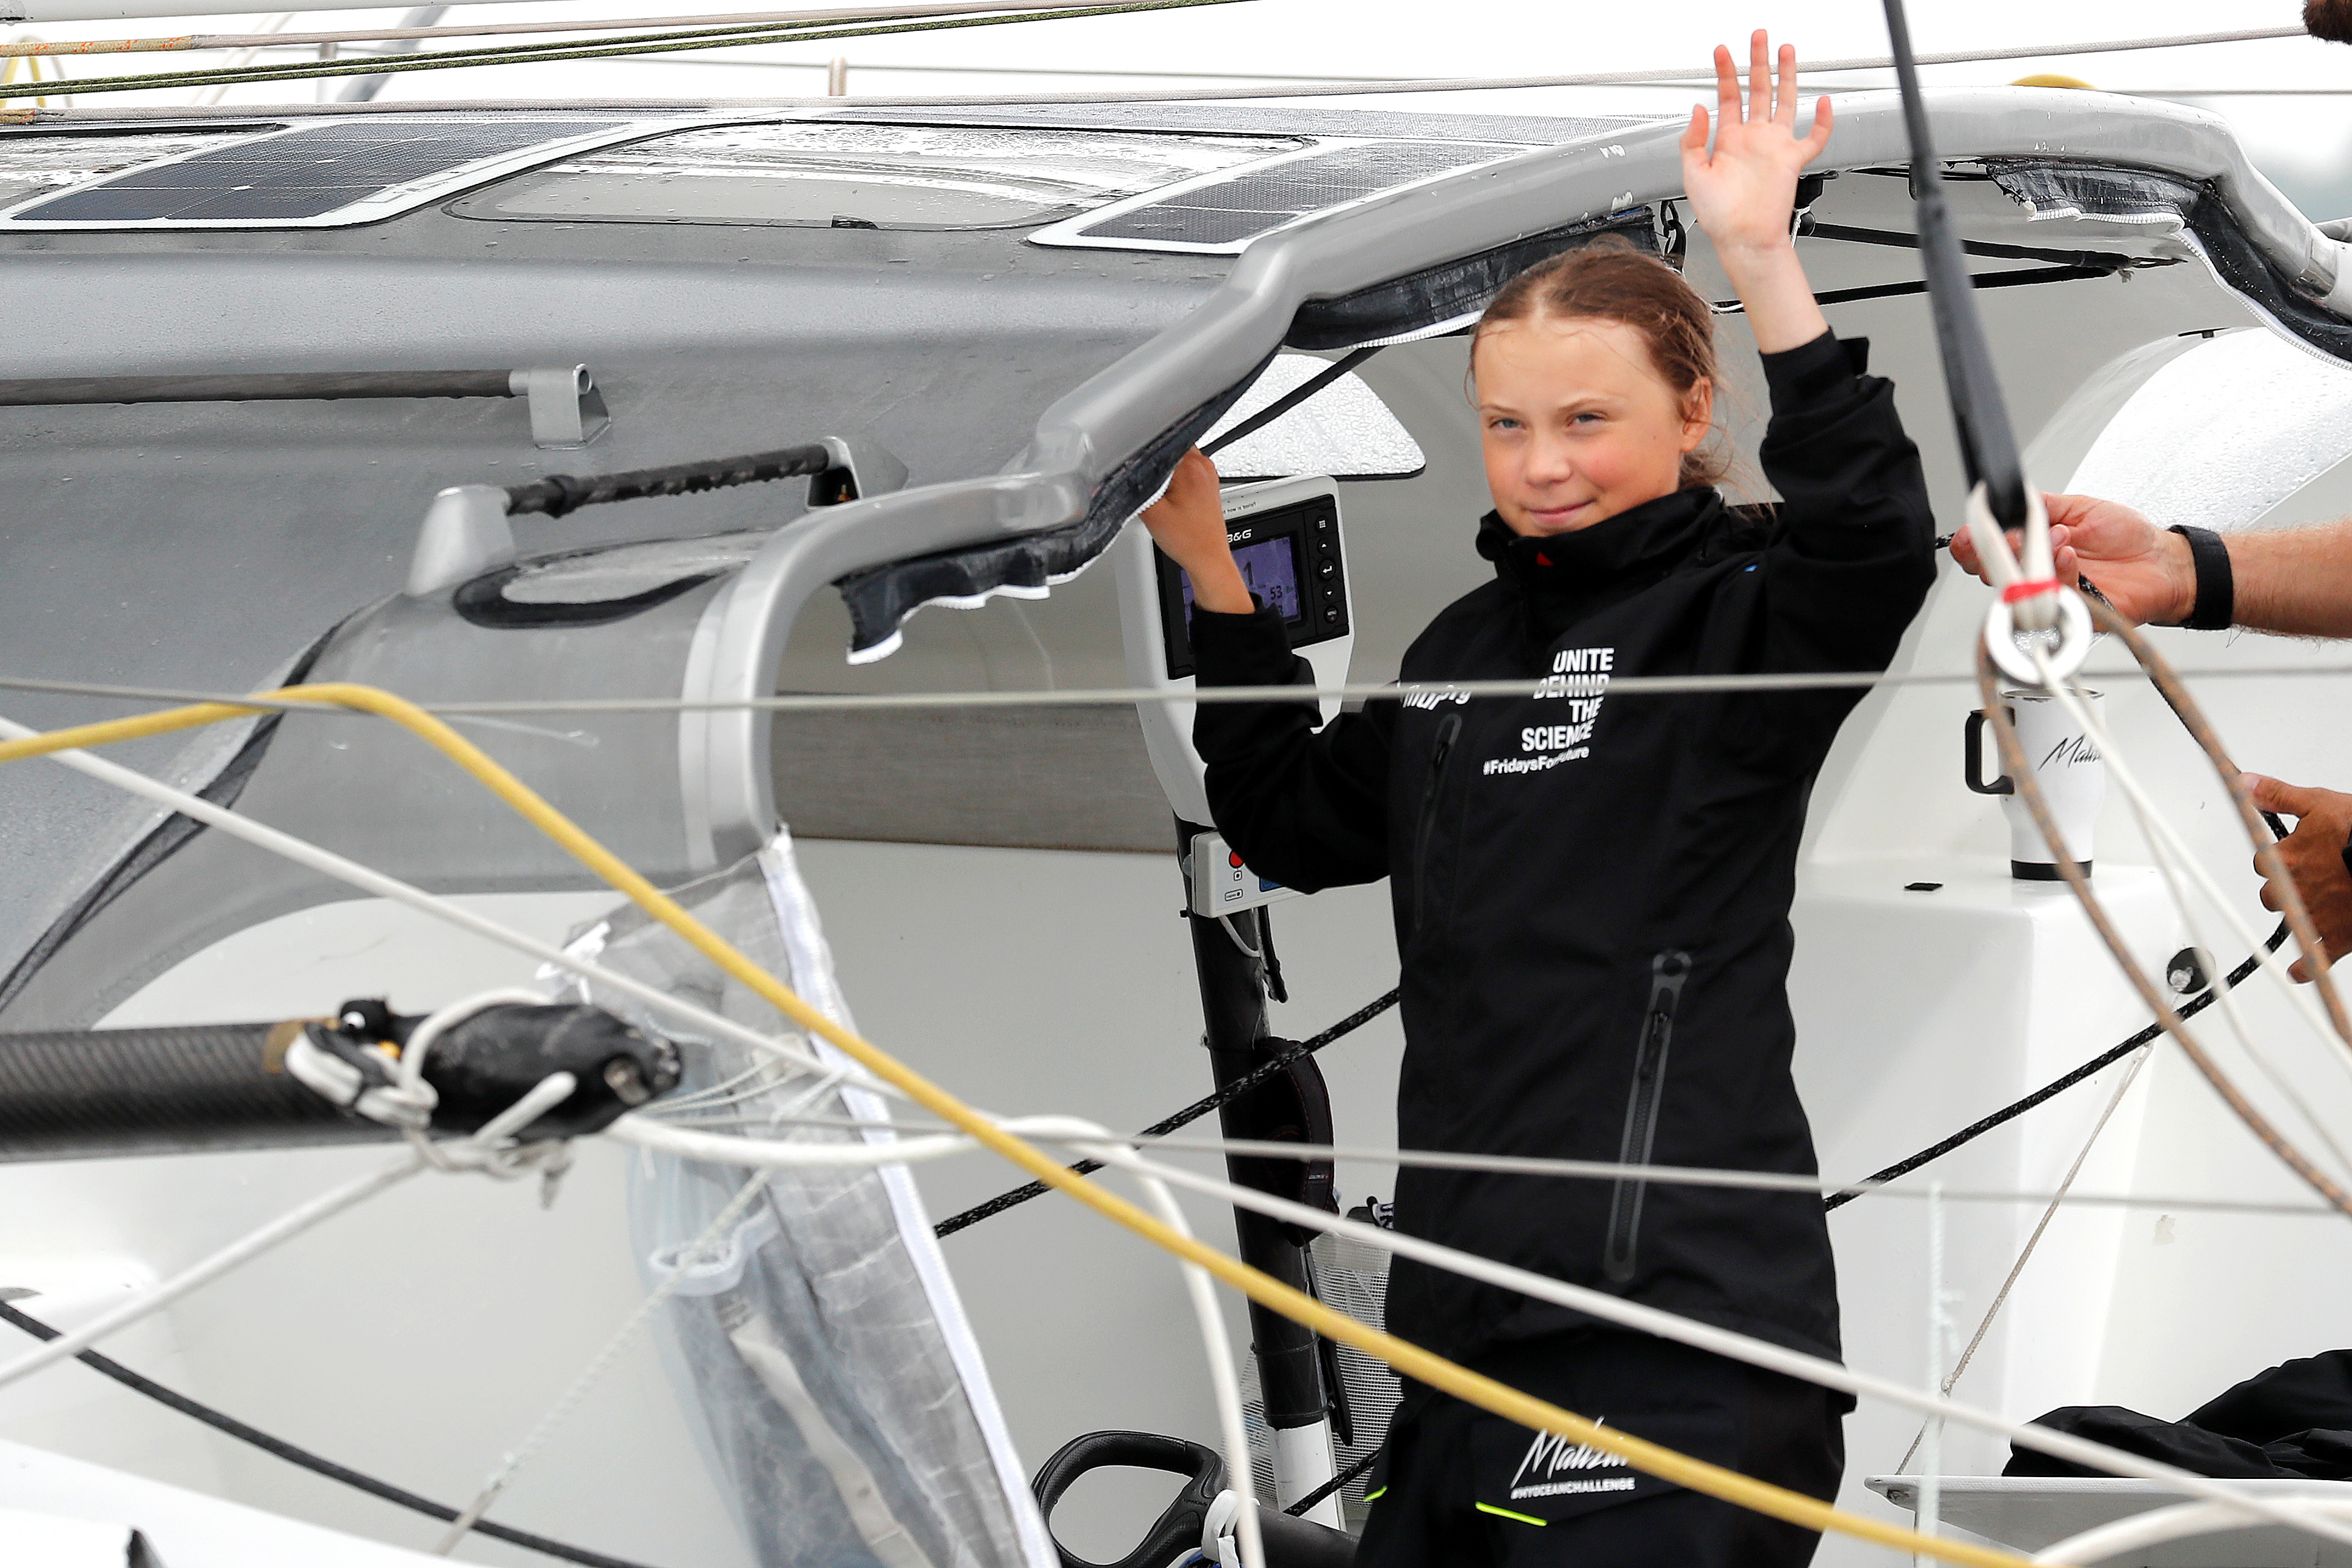 Swedish 16-year-old activist Greta Thunberg sails on the Malizia II racing yacht in New York Harbor as she nears the completion of her trans-Atlantic crossing in order to attend a United Nations summit on climate change in New York, U.S., August 28, 2019. REUTERS/Mike Segar